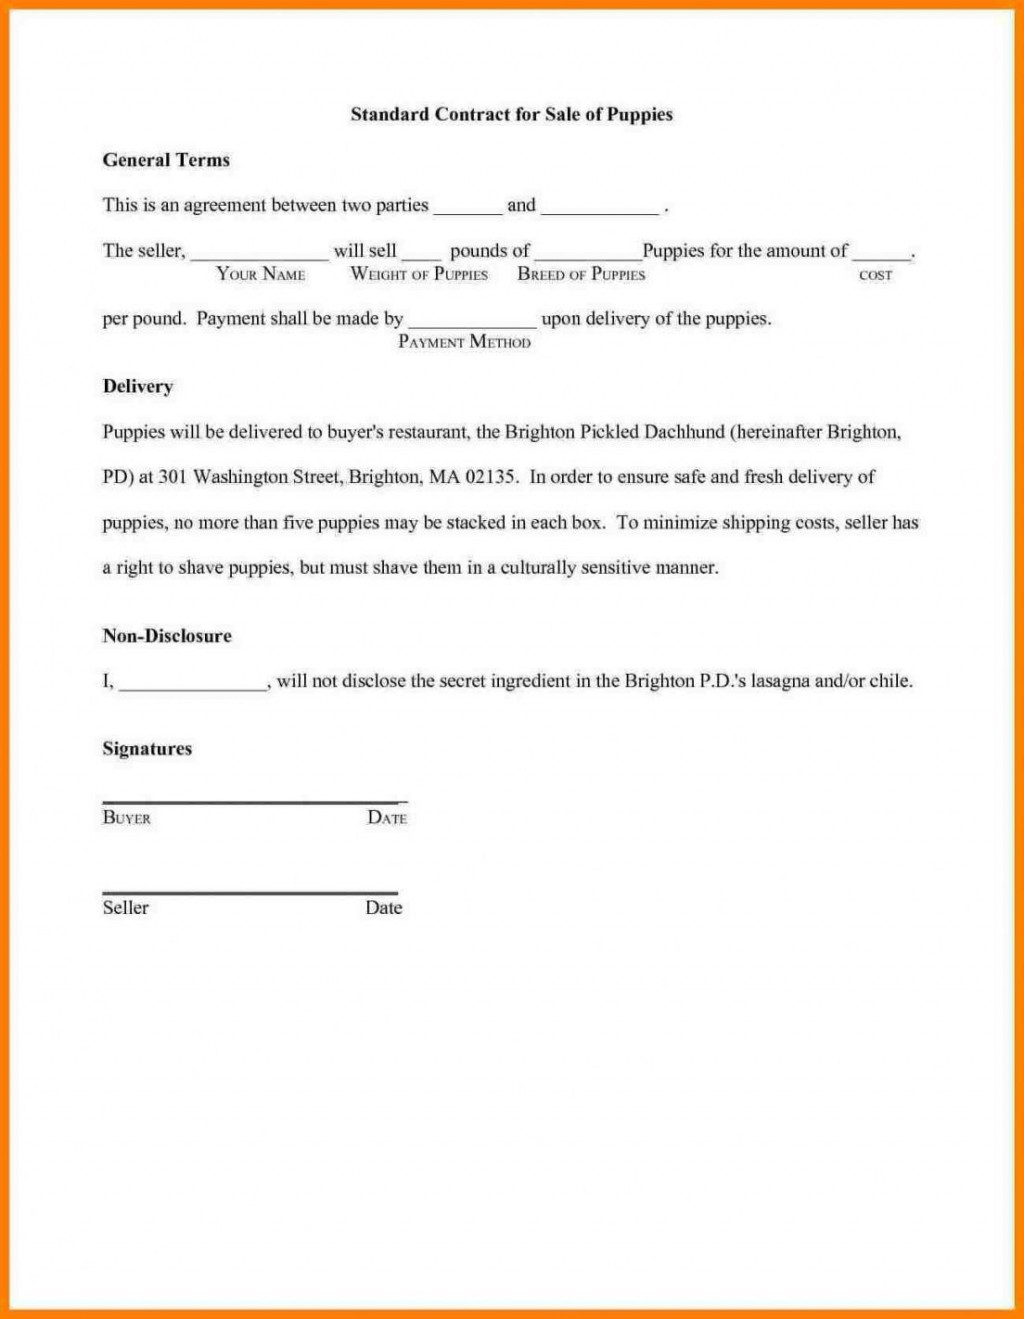 004 Simple Non Compete Agreement Template South Africa Photo Large